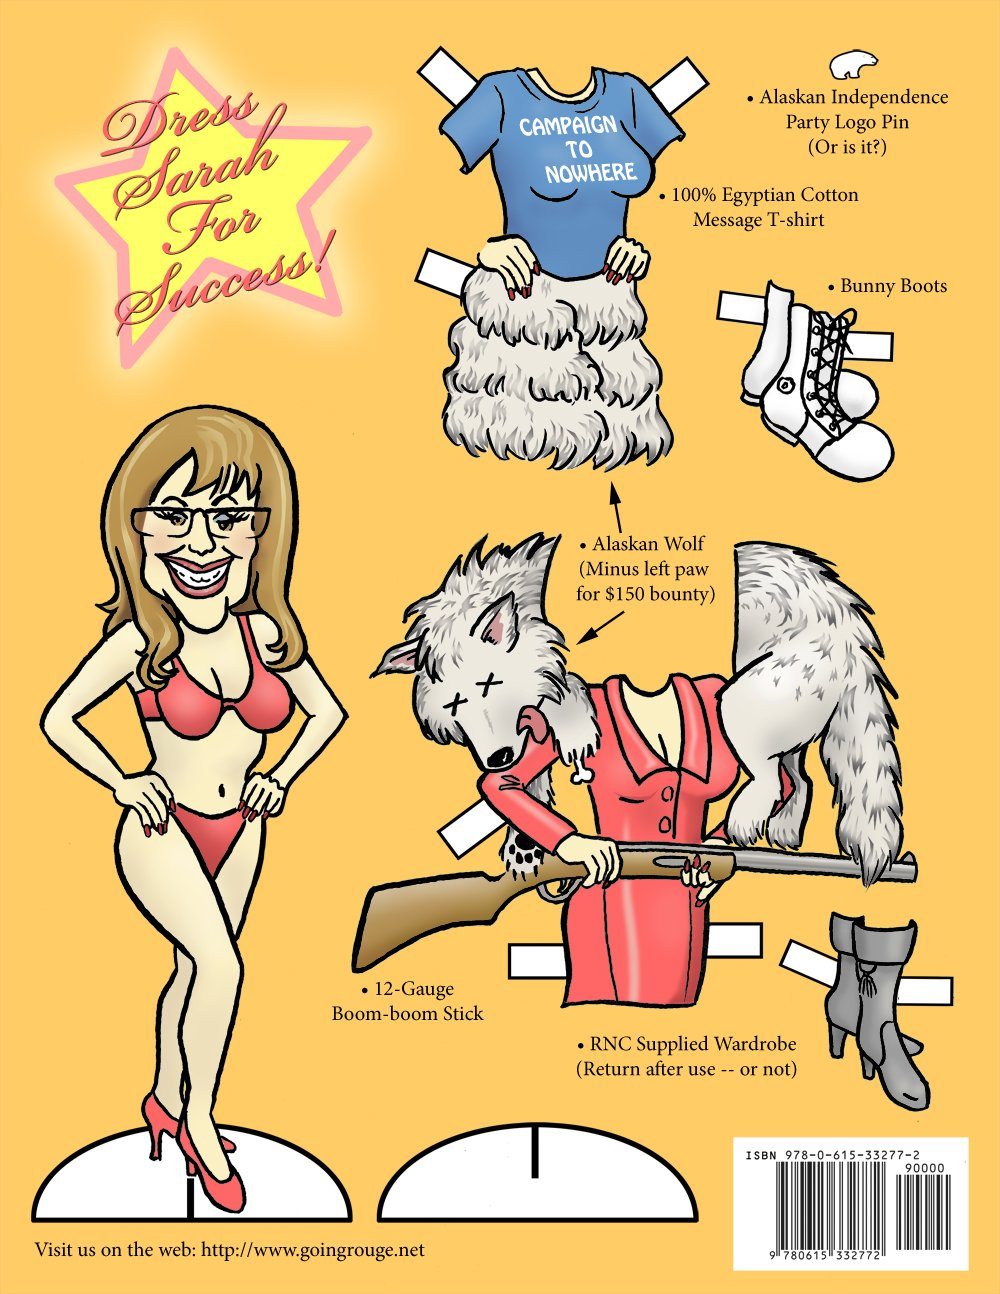 Includes Sarah Palin Paper Doll